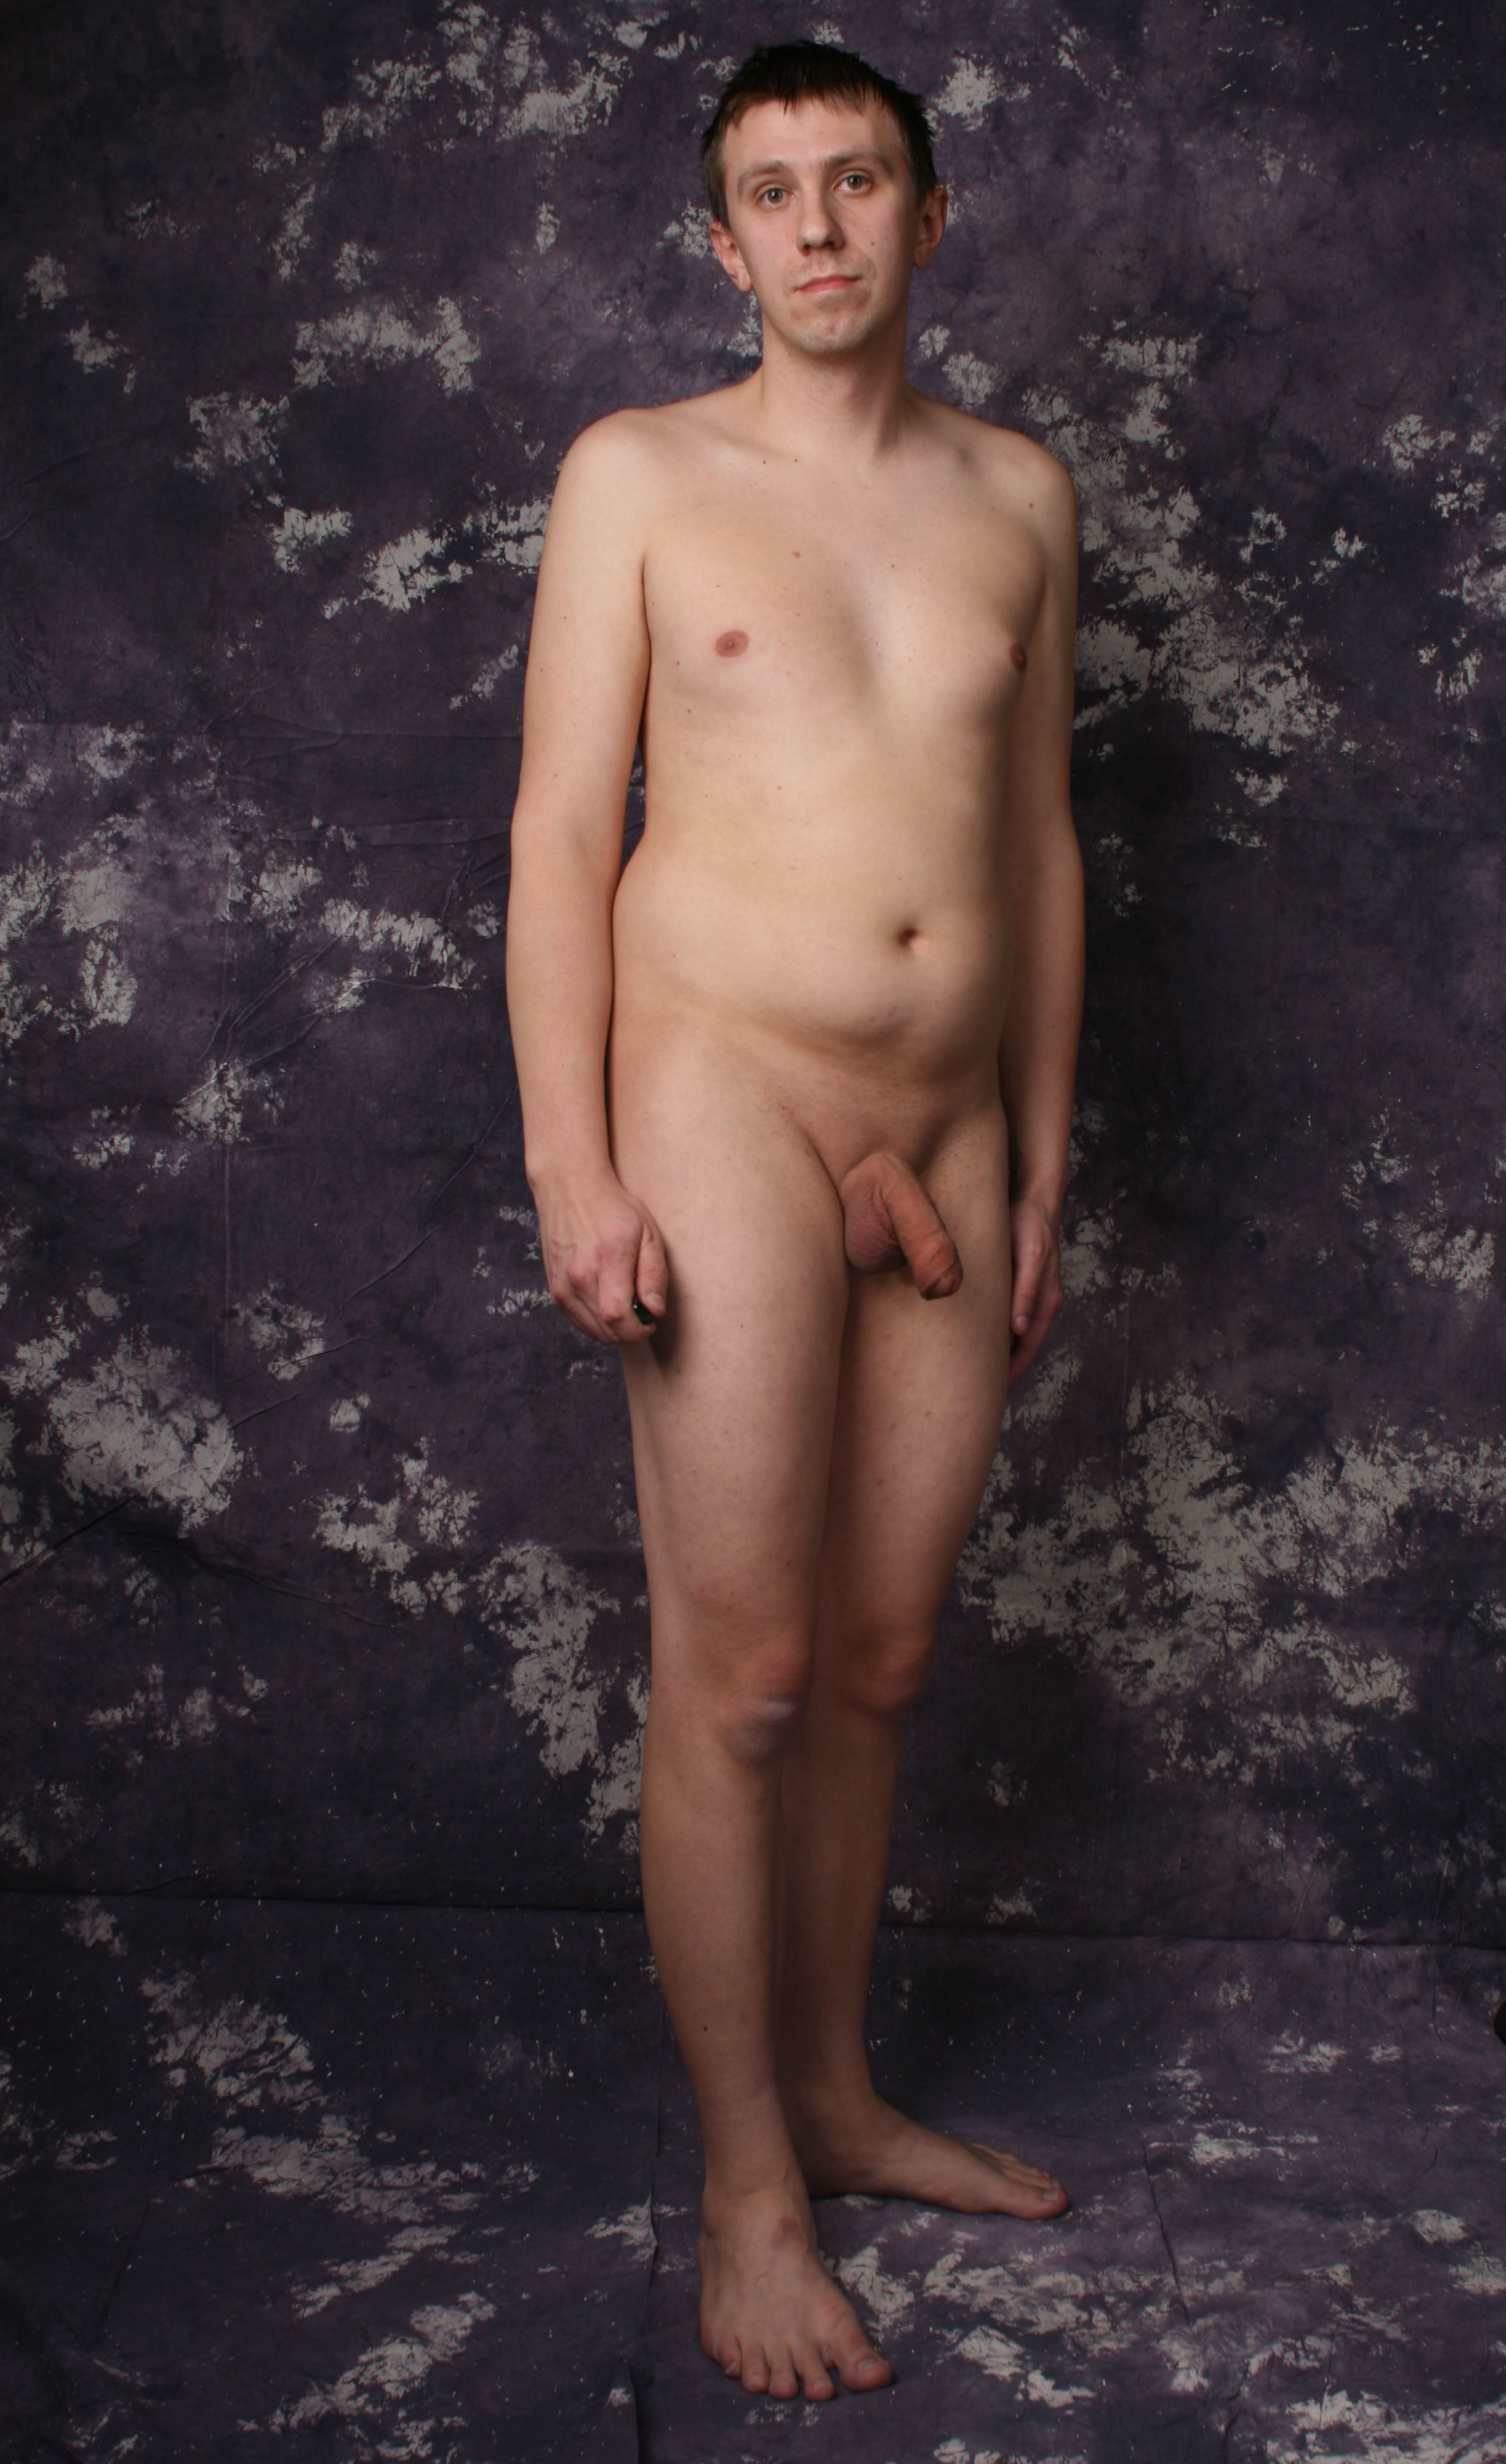 Naturist-Nudist-Hamilton-Toronto-Nude-Naked-photo-by-NaturistPhotographer